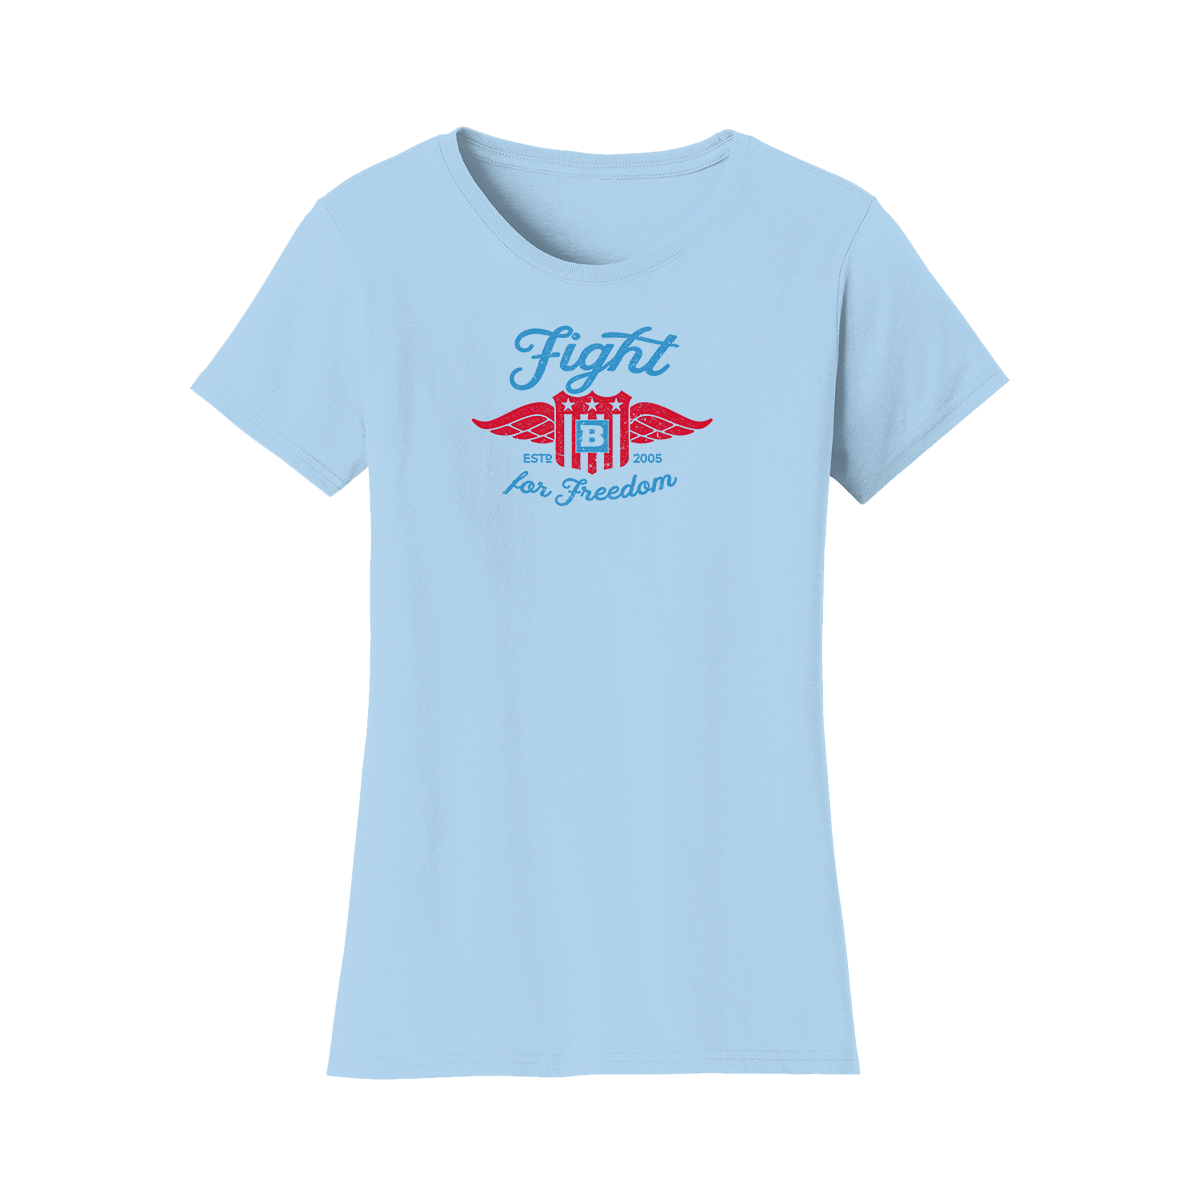 Fight For Freedom Retro Women's T-Shirt - Light Blue